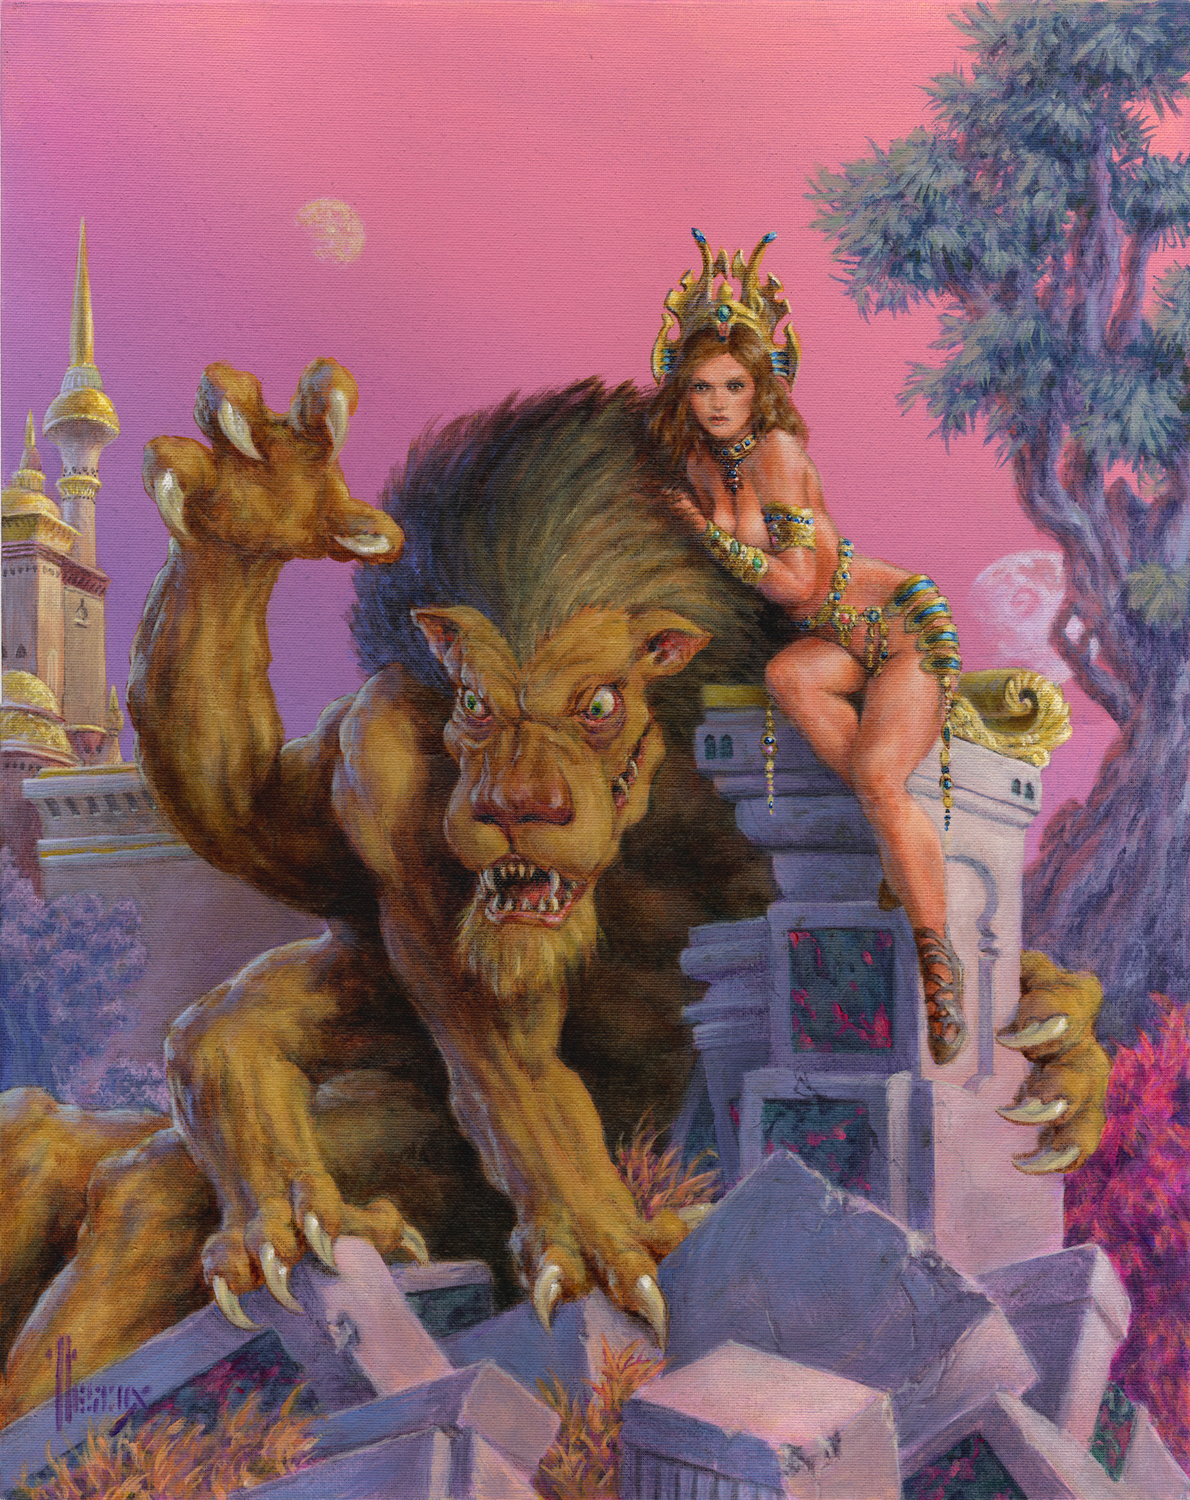 Thuvia and Her Banth Artwork by Richard Hescox